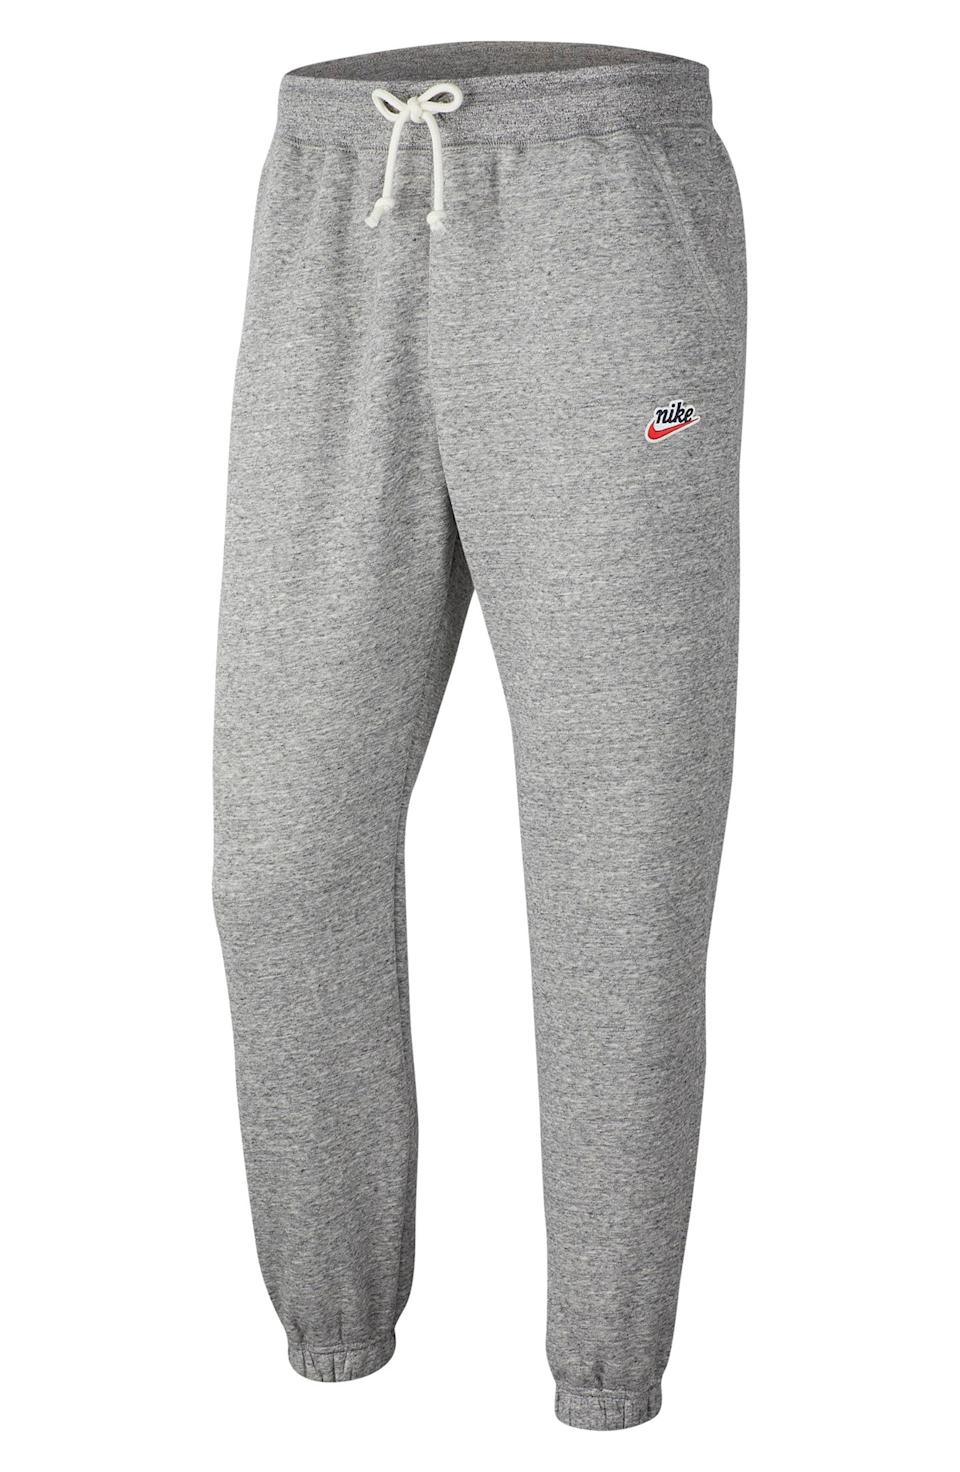 """<p><strong>Nike Sportswear</strong></p><p>nordstrom.com</p><p><strong>$39.00</strong></p><p><a href=""""https://go.redirectingat.com?id=74968X1596630&url=https%3A%2F%2Fwww.nordstrom.com%2Fs%2Fnike-sportswear-heritage-jogger-sweatpants%2F5942955&sref=https%3A%2F%2Fwww.esquire.com%2Fstyle%2Fg36535194%2Fnordstrom-mens-sale-half-yearly-spring-2021%2F"""" rel=""""nofollow noopener"""" target=""""_blank"""" data-ylk=""""slk:Shop Now"""" class=""""link rapid-noclick-resp"""">Shop Now</a></p><p>It doesn't get much better than throwback sweatpants from a master of the form.</p>"""